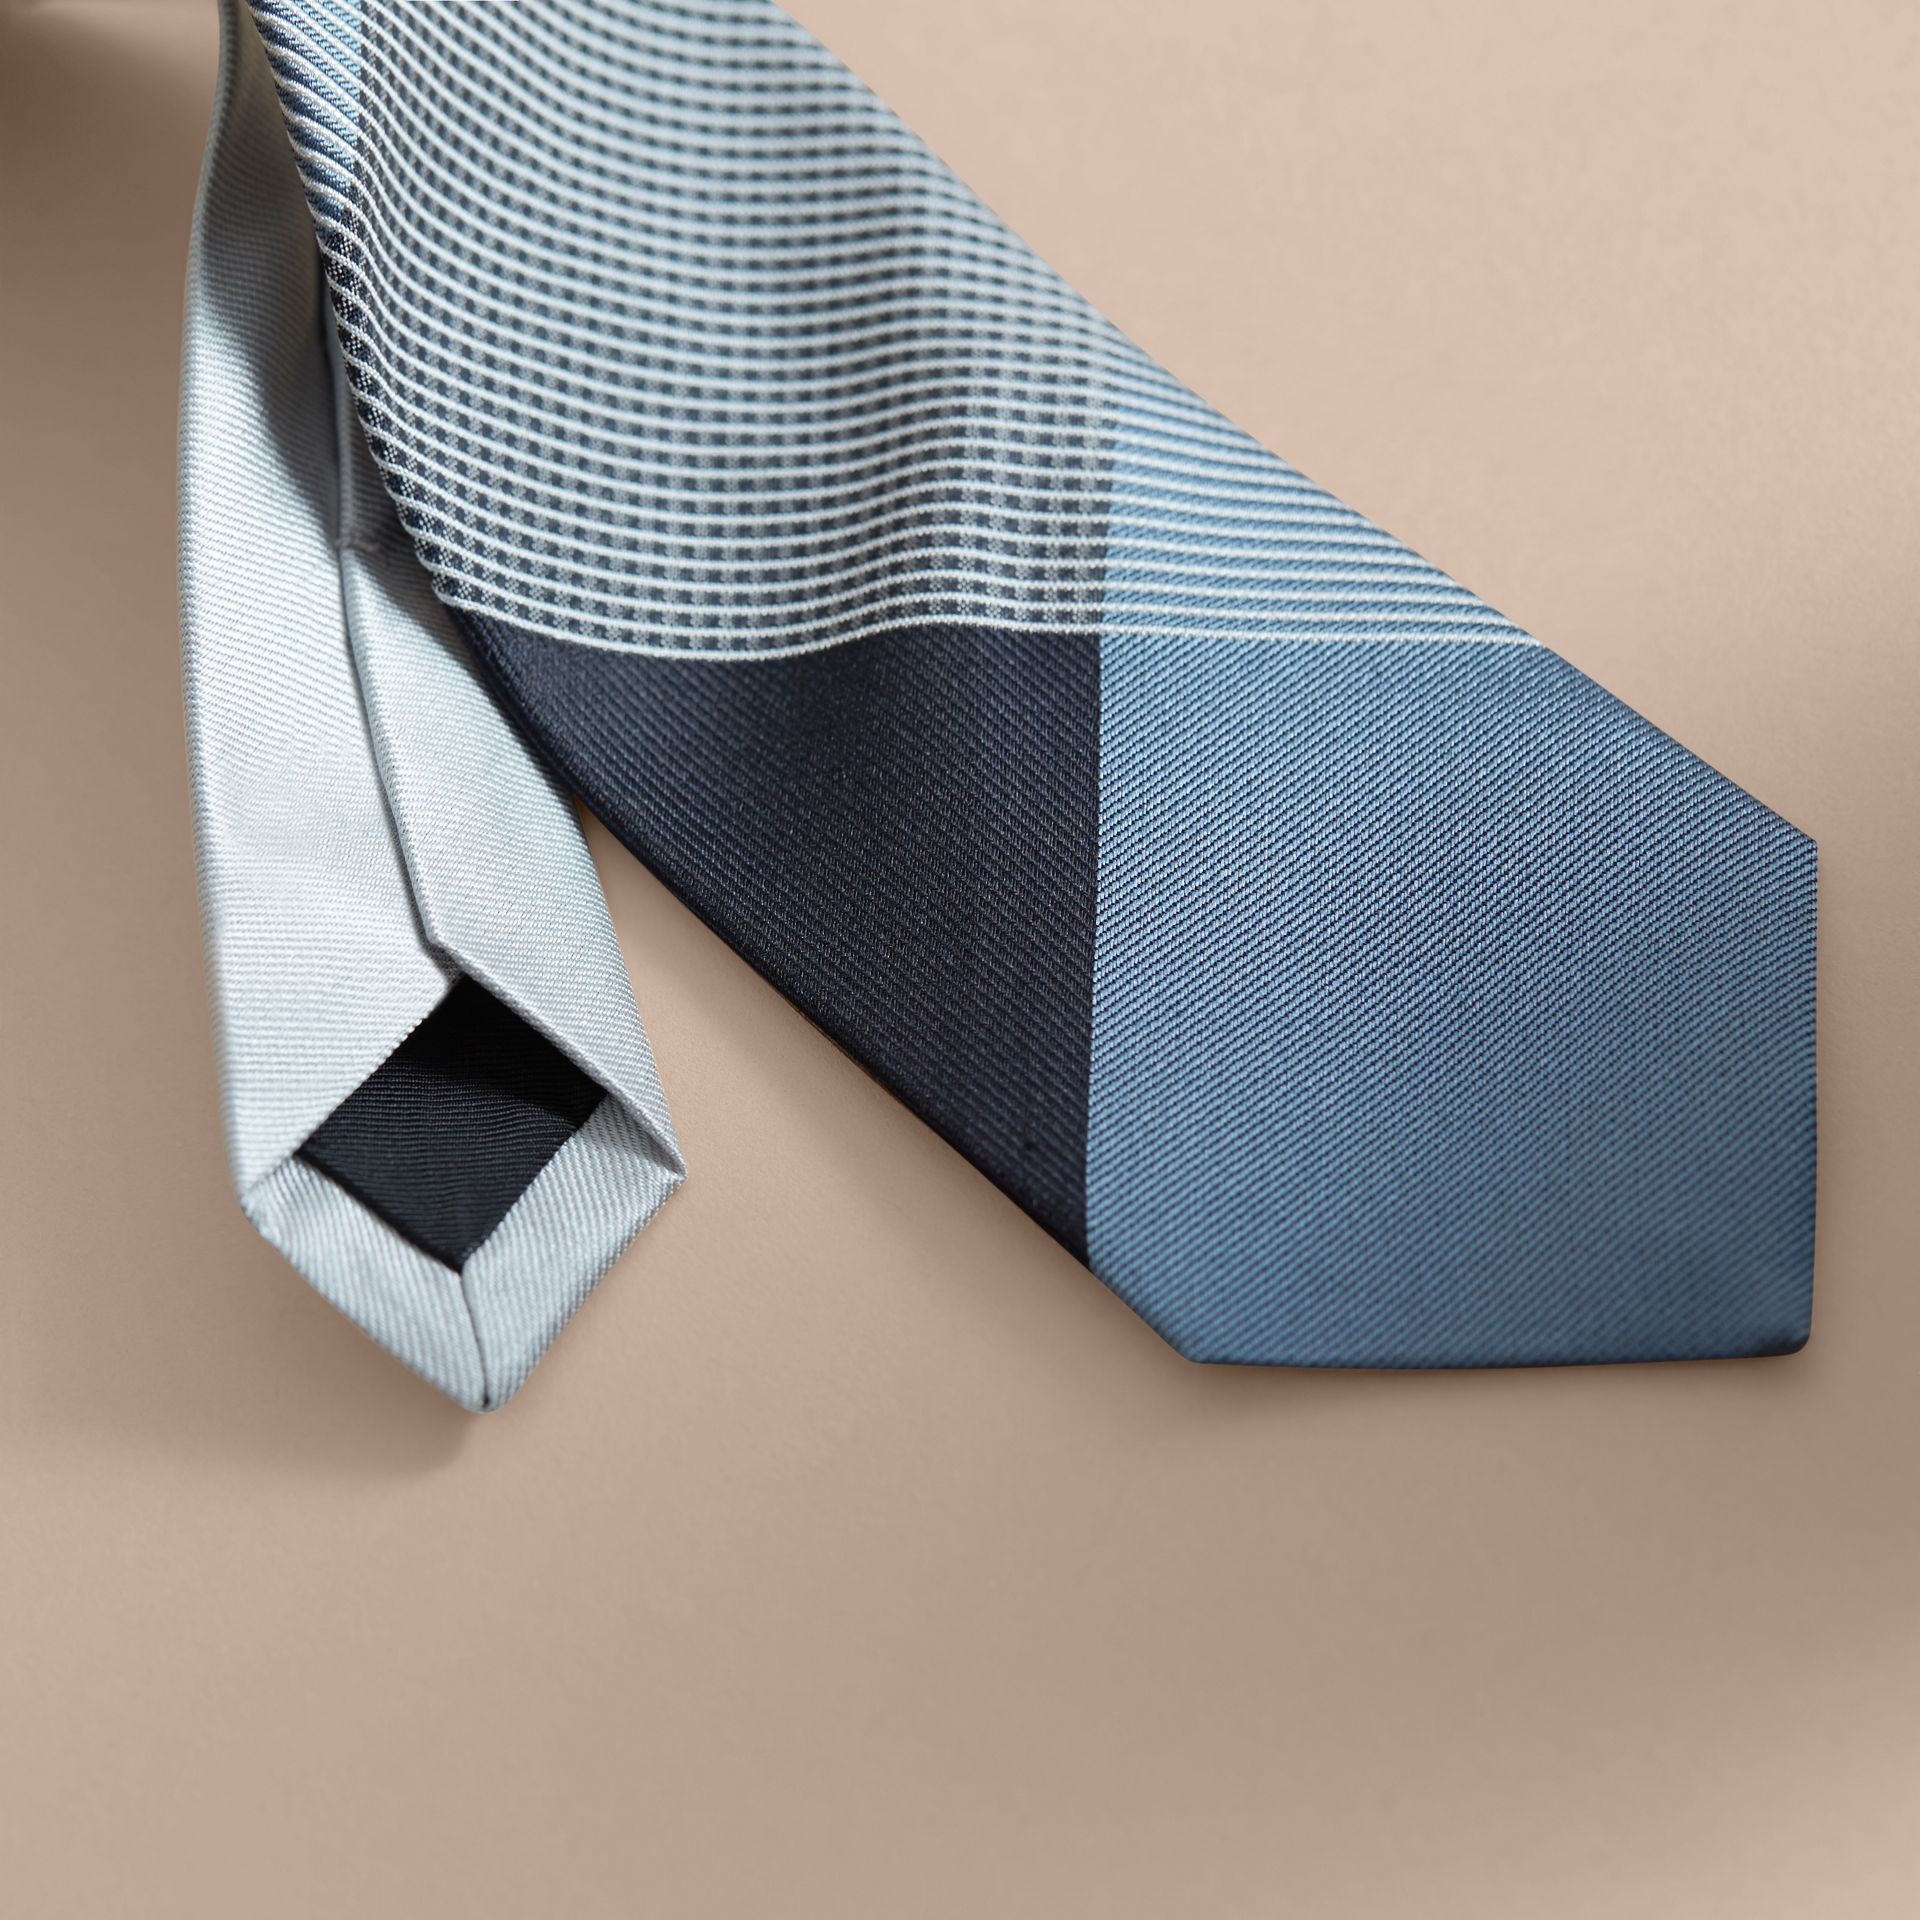 Modern Cut Gingham Check Silk Jacquard Tie in Slate Blue - Men | Burberry - gallery image 2